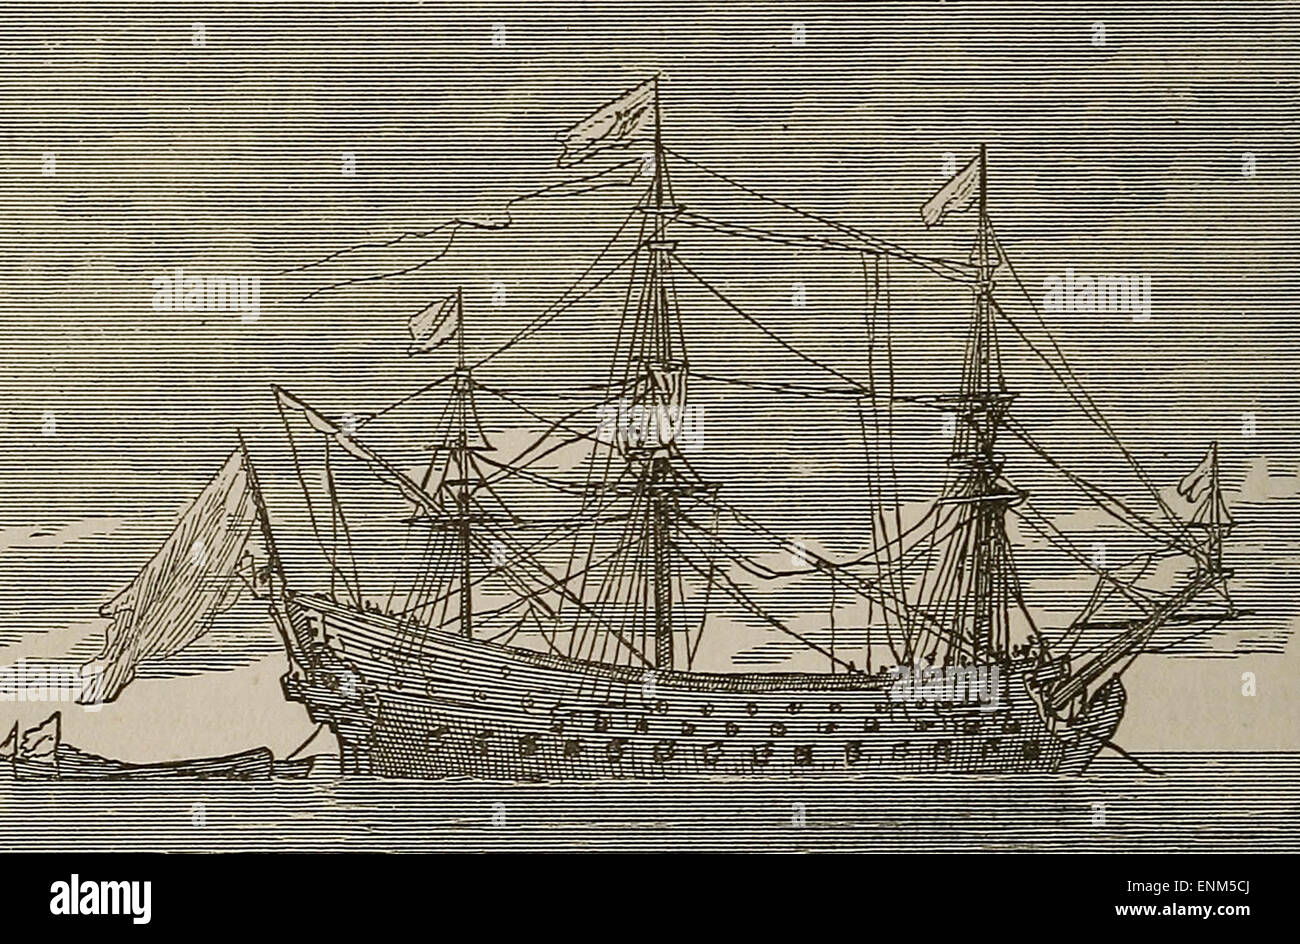 Le Soleil Royale - A famous French 120-Gun Ship, 17th Century, Built by Colbert - Stock Image